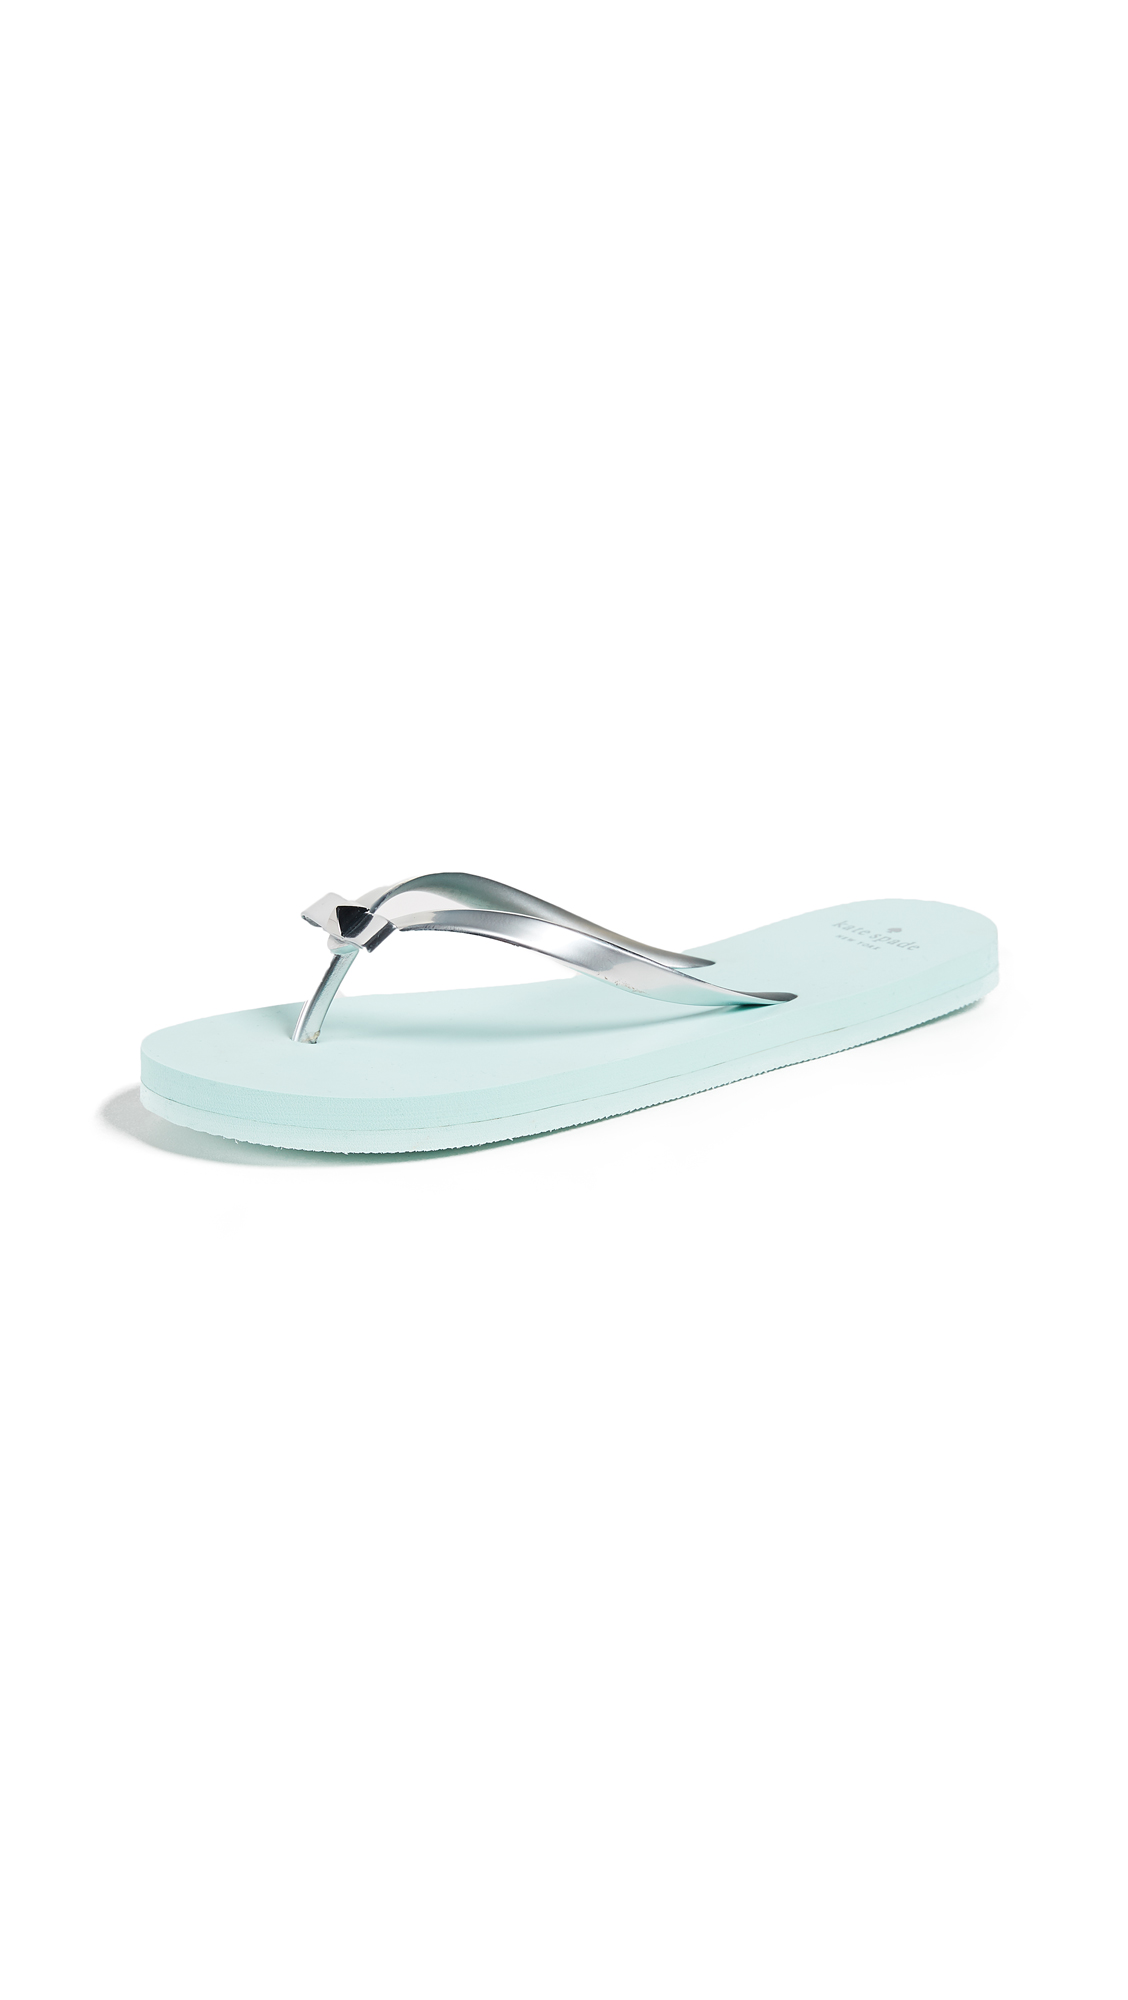 Kate Spade New York Happily Imprint Flip Flops - Silver/Light Blue